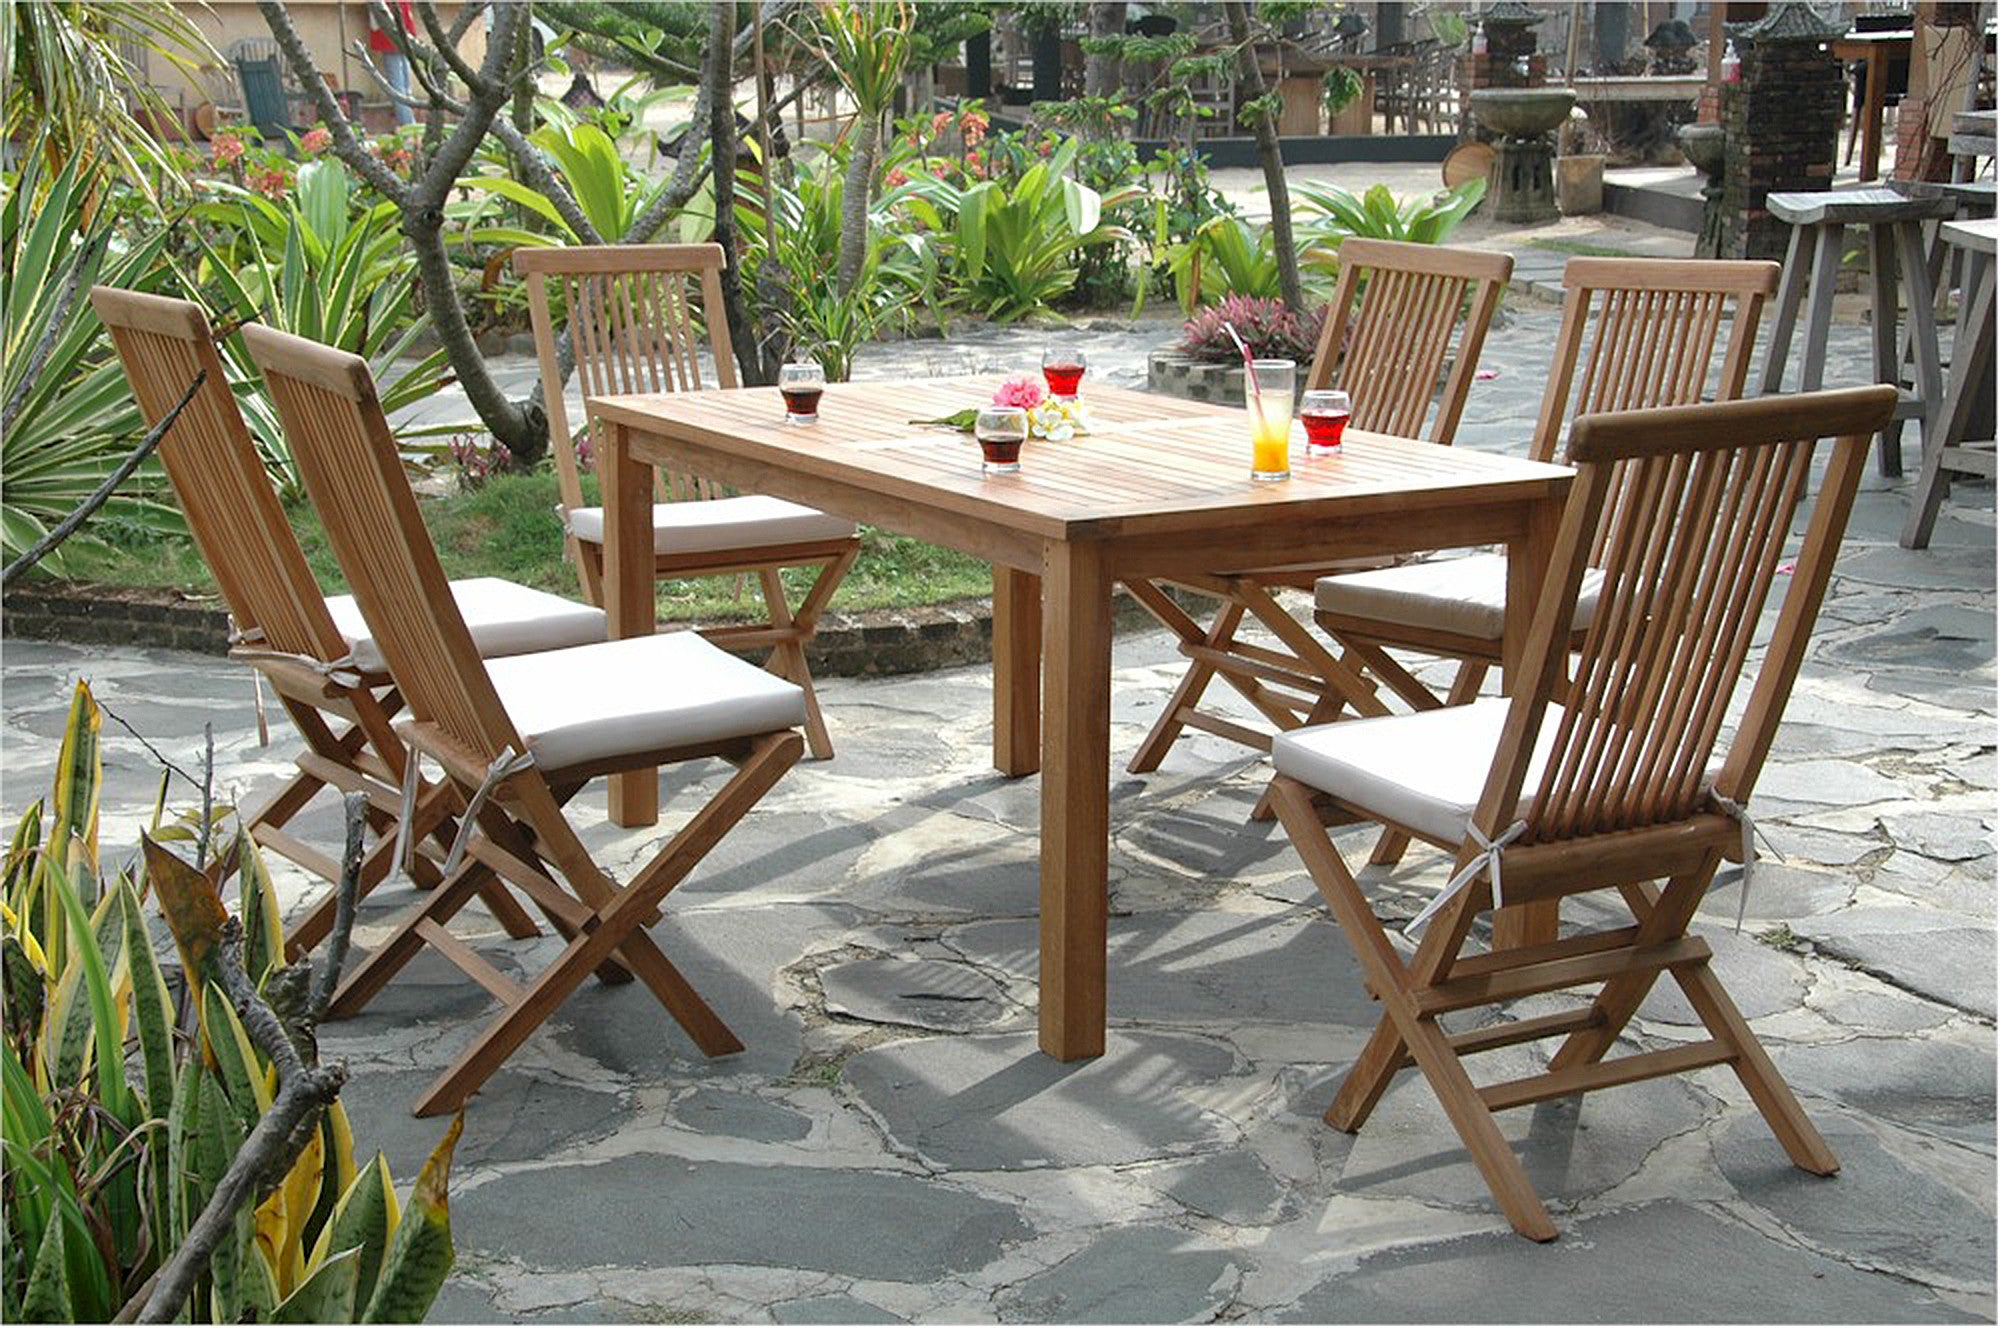 Chapman   Montage Bristol Teak Patio Dining Set  SET 202   Furniture    Teakwood. Montage Bristol Teak Patio Dining Set by Chapman Collections  Set